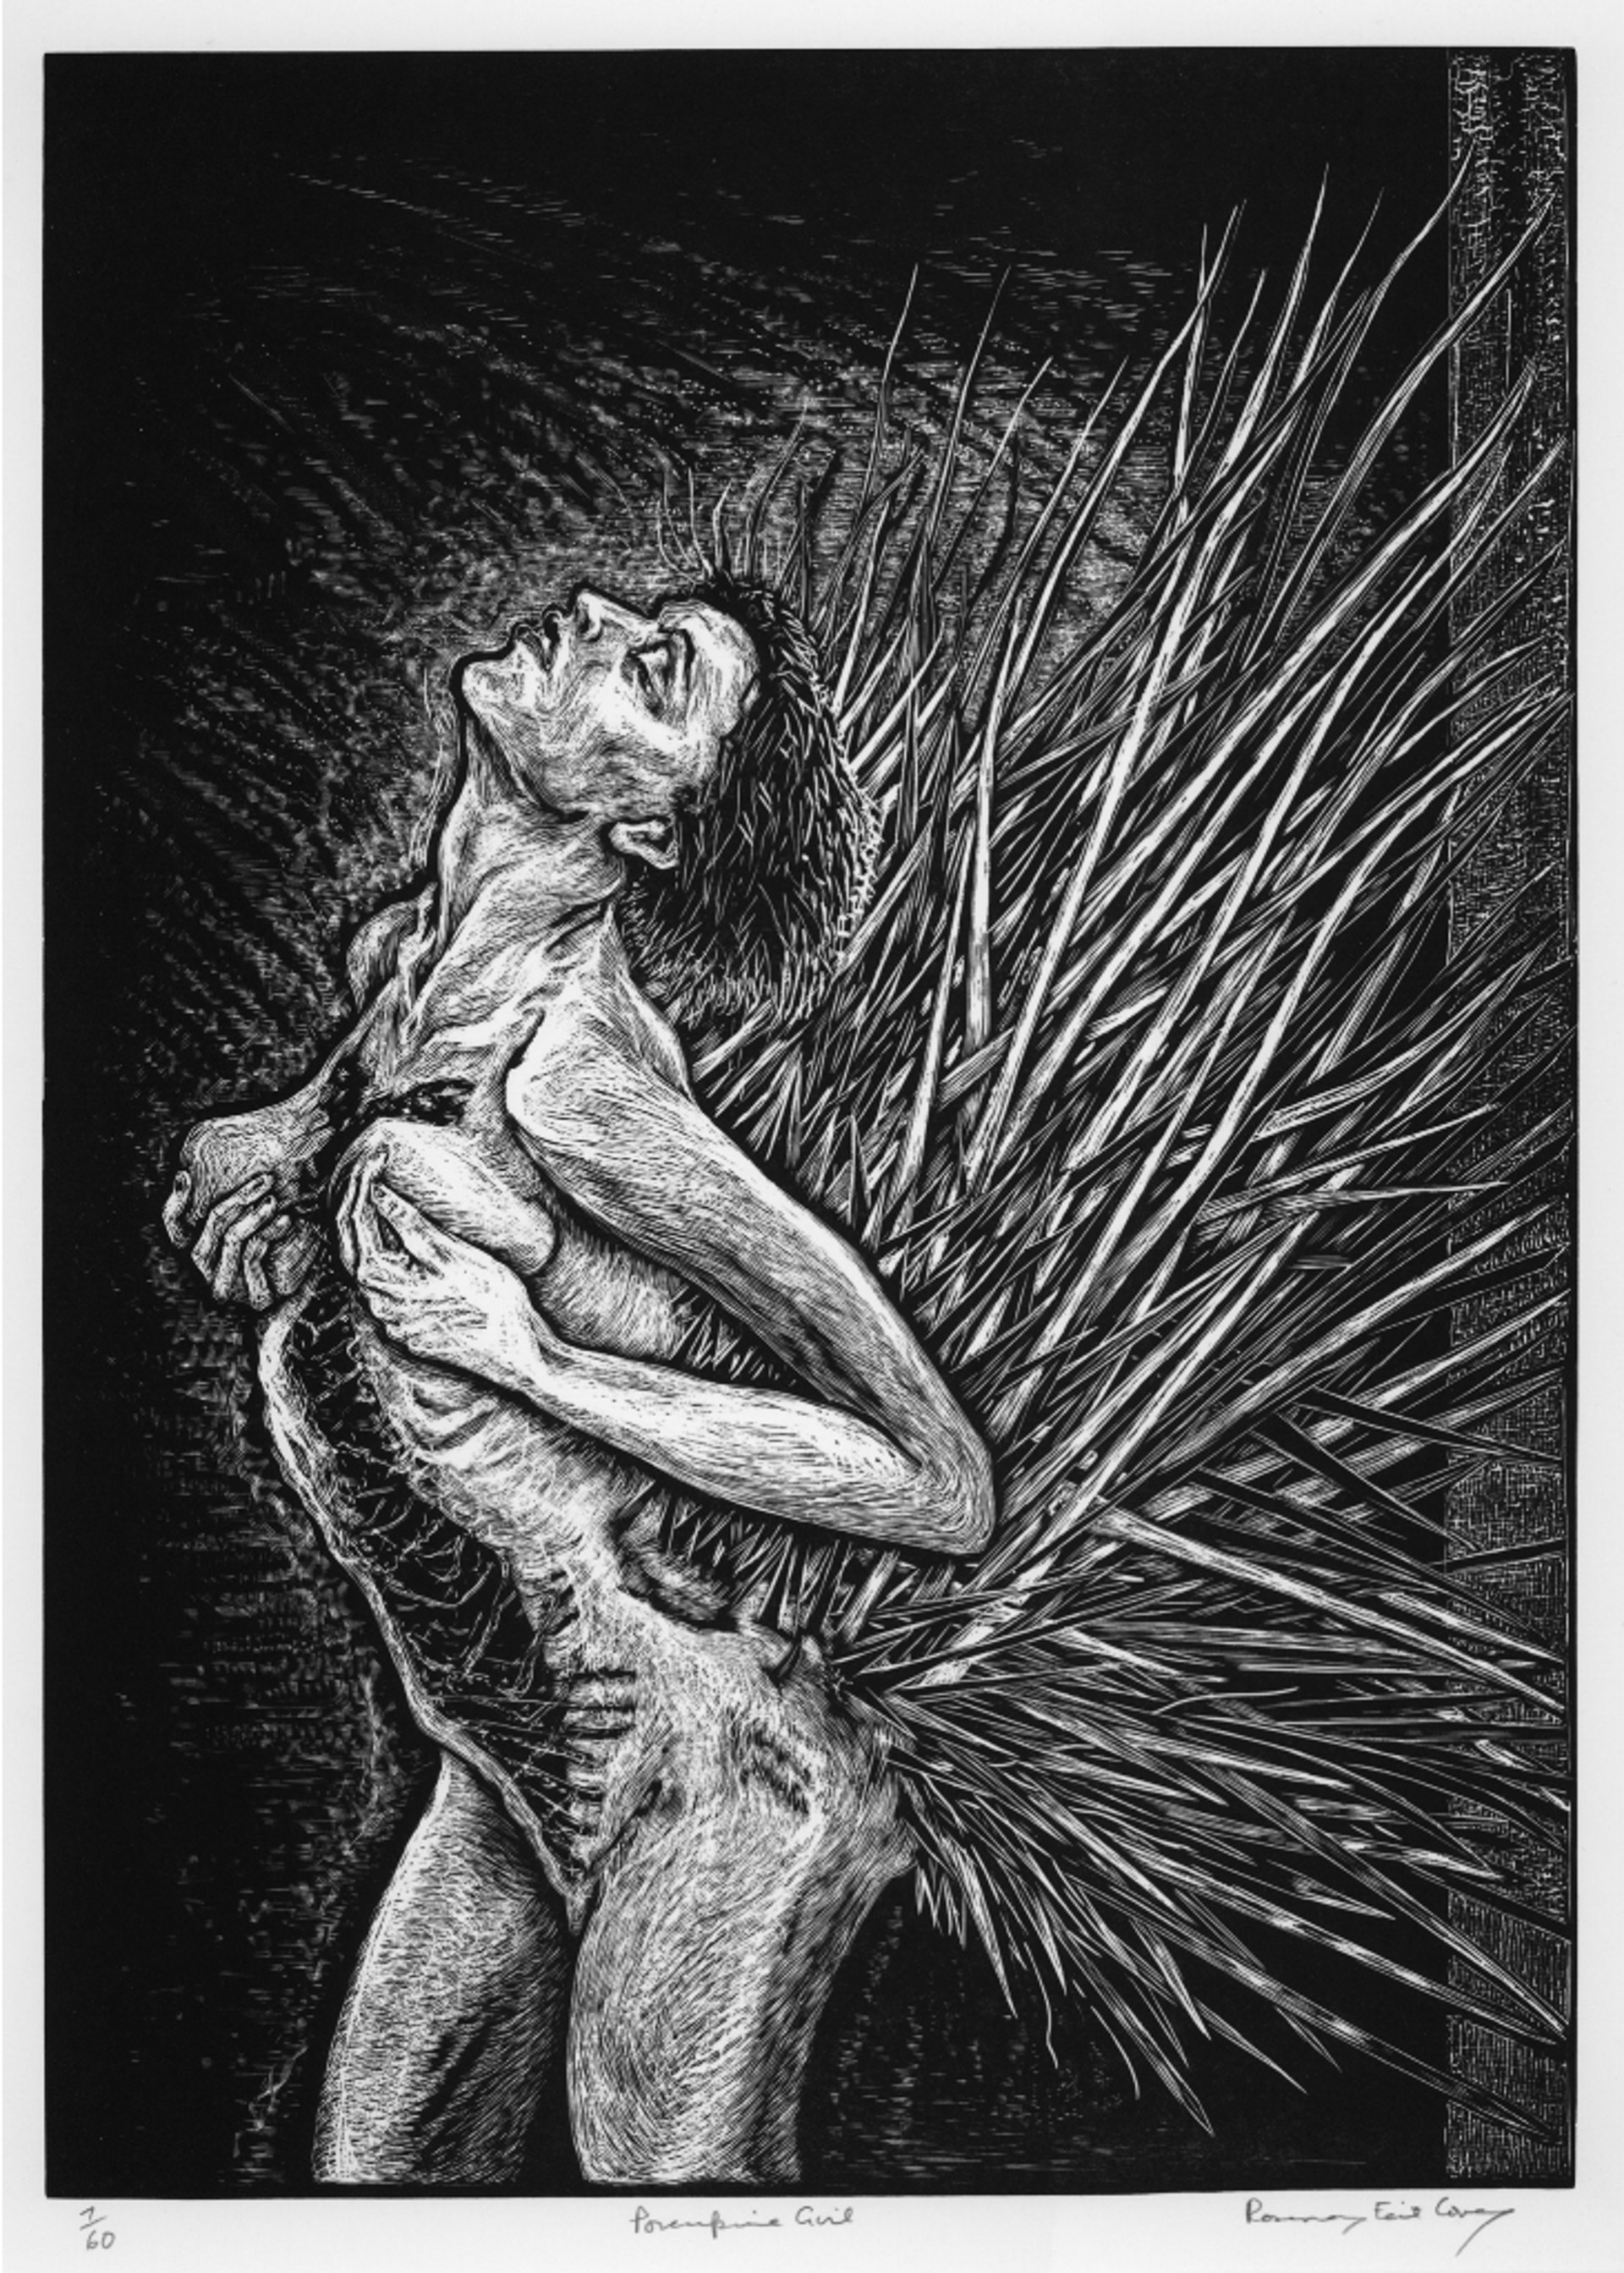 Porcupine Girl (Standing) by Rosemary Feit Covey